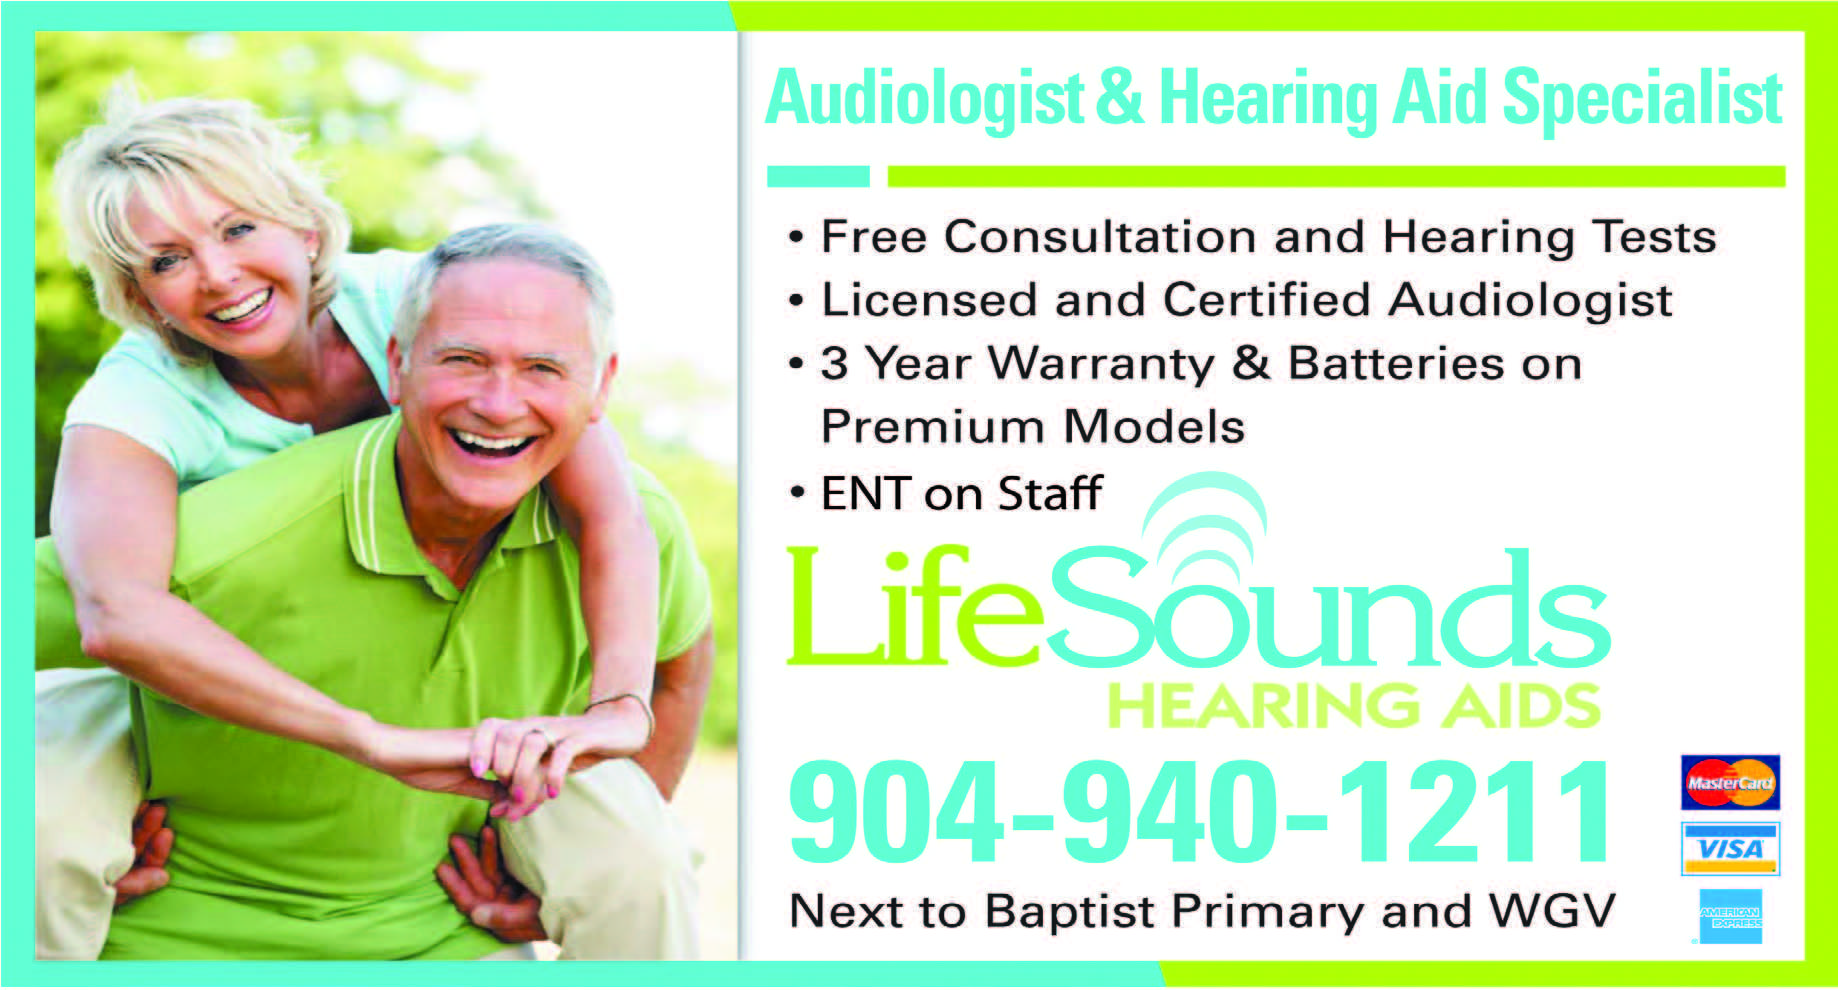 Lifesounds Hearing Aids